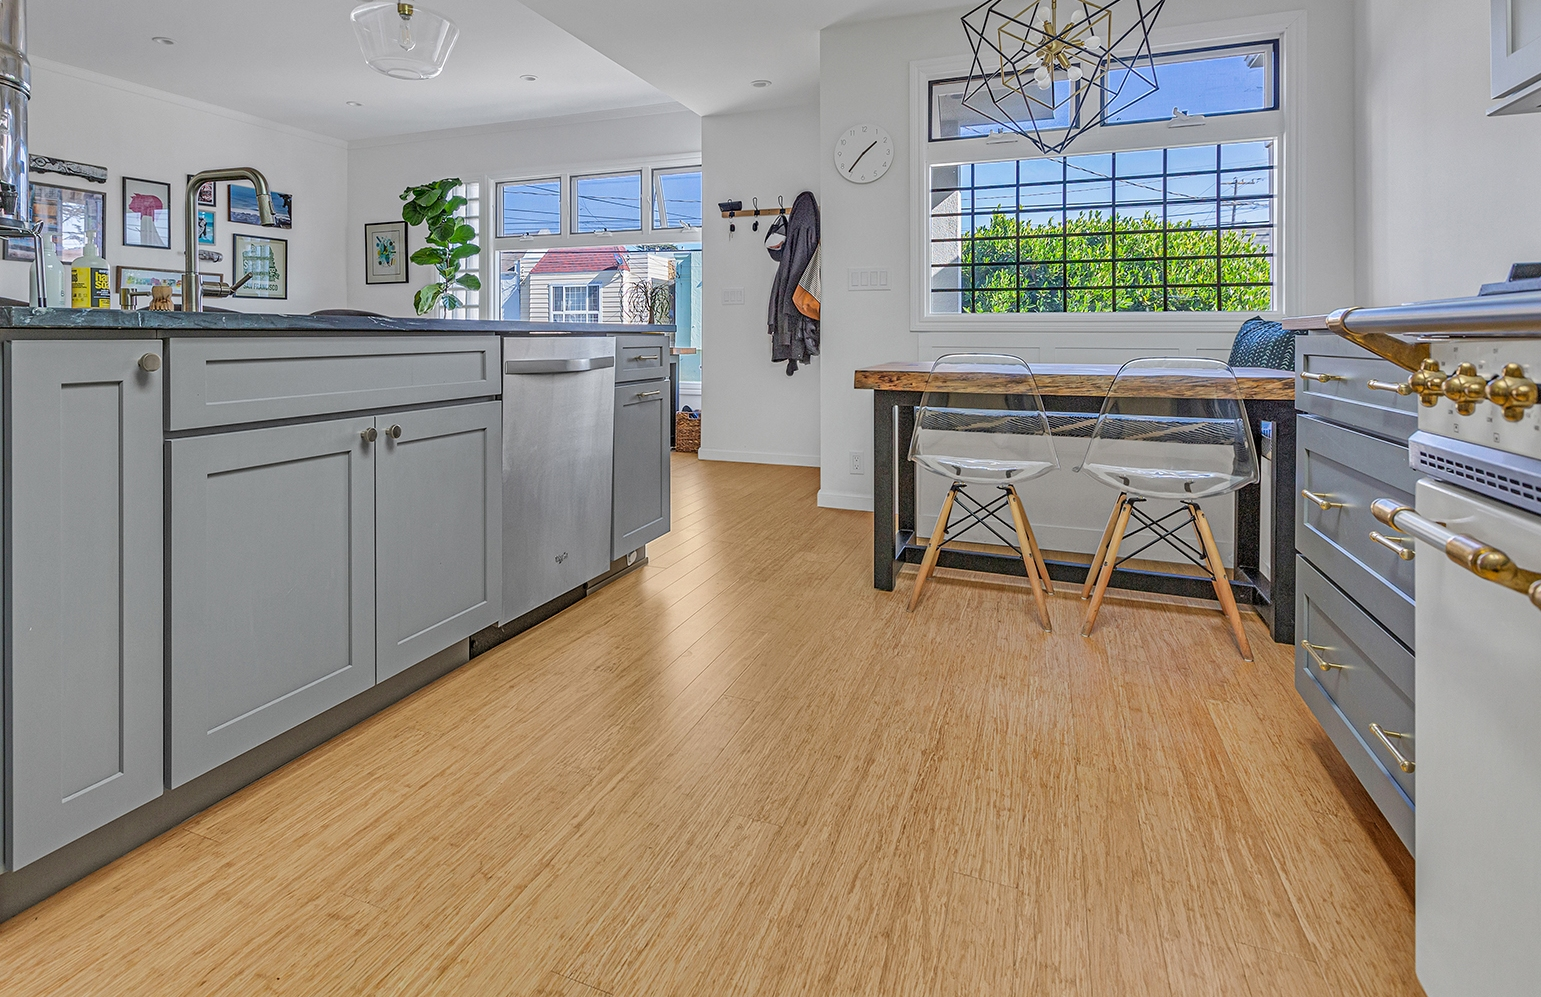 Natural Wide Plank Strand Bamboo Floor Kitchenpfc2